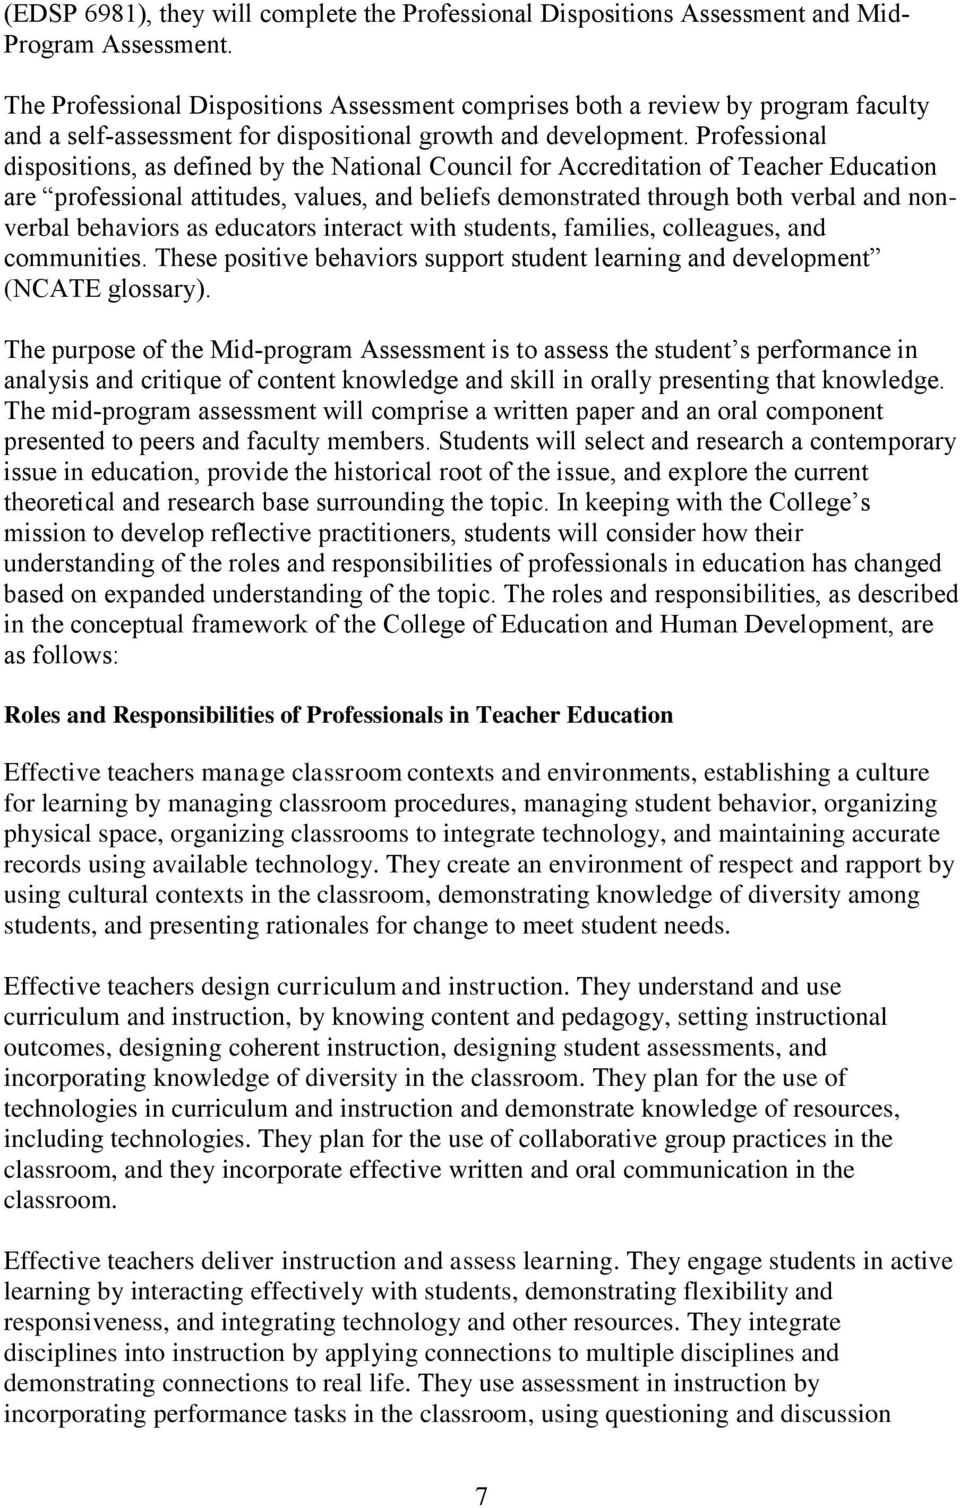 Professional dispositions, as defined by the National Council for Accreditation of Teacher Education are professional attitudes, values, and beliefs demonstrated through both verbal and nonverbal